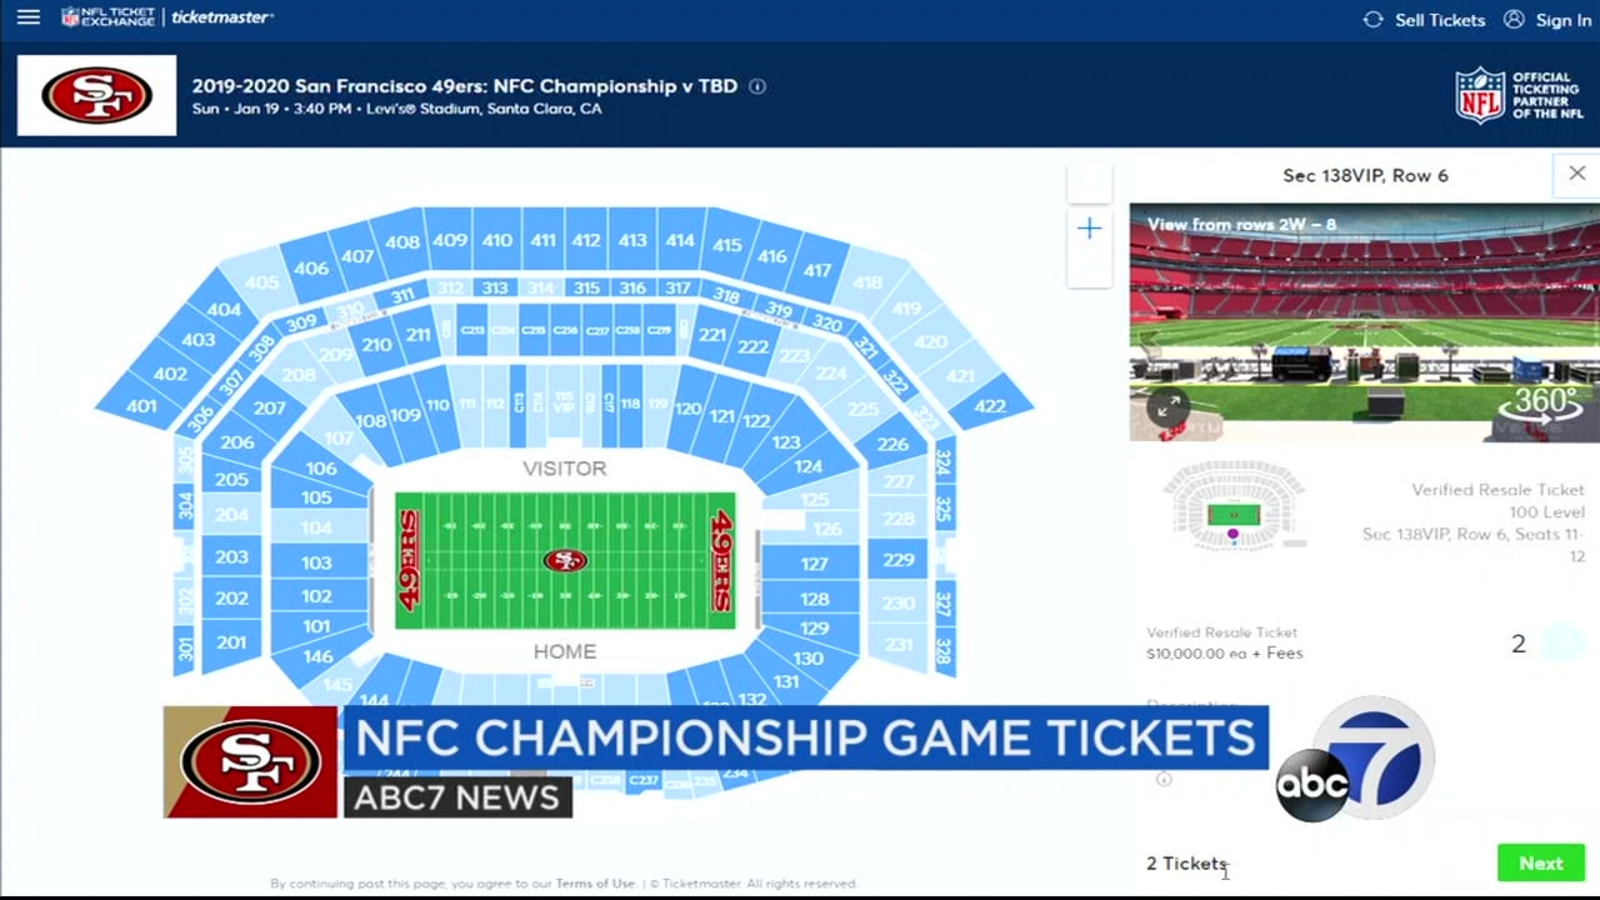 Lowest Highest Ticket Prices To Watch 49ers For Sunday S Nfc Championship Game At Levi S Stadium In Santa Clara Abc7 San Francisco